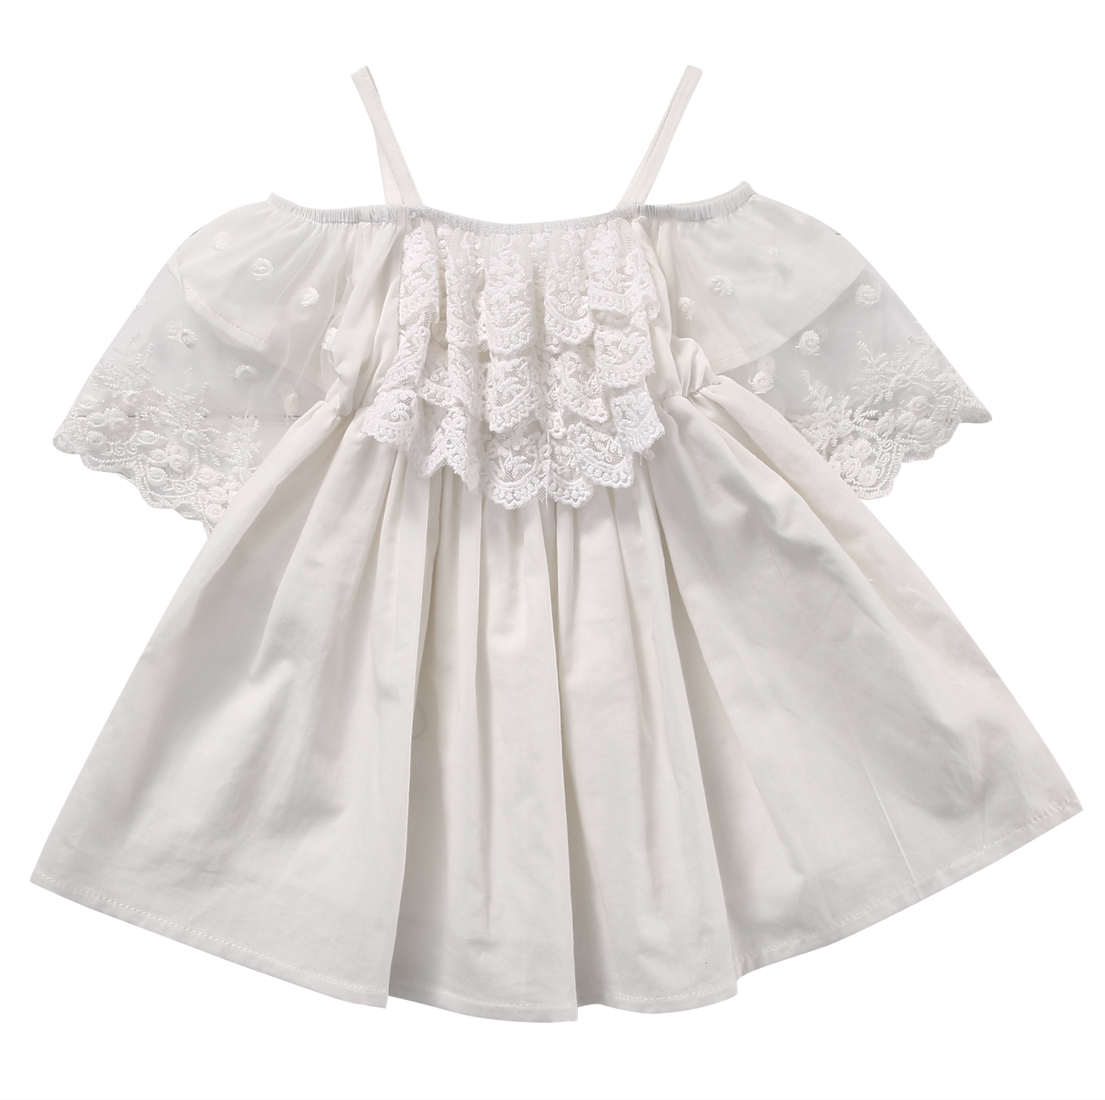 Lace-Girl-Clothing-Princess-Dress-Kid-Baby-Party-Wedding-Pageant-Formal-Mini-Cute-White-Dresses-Clothes-Baby-Girls-5